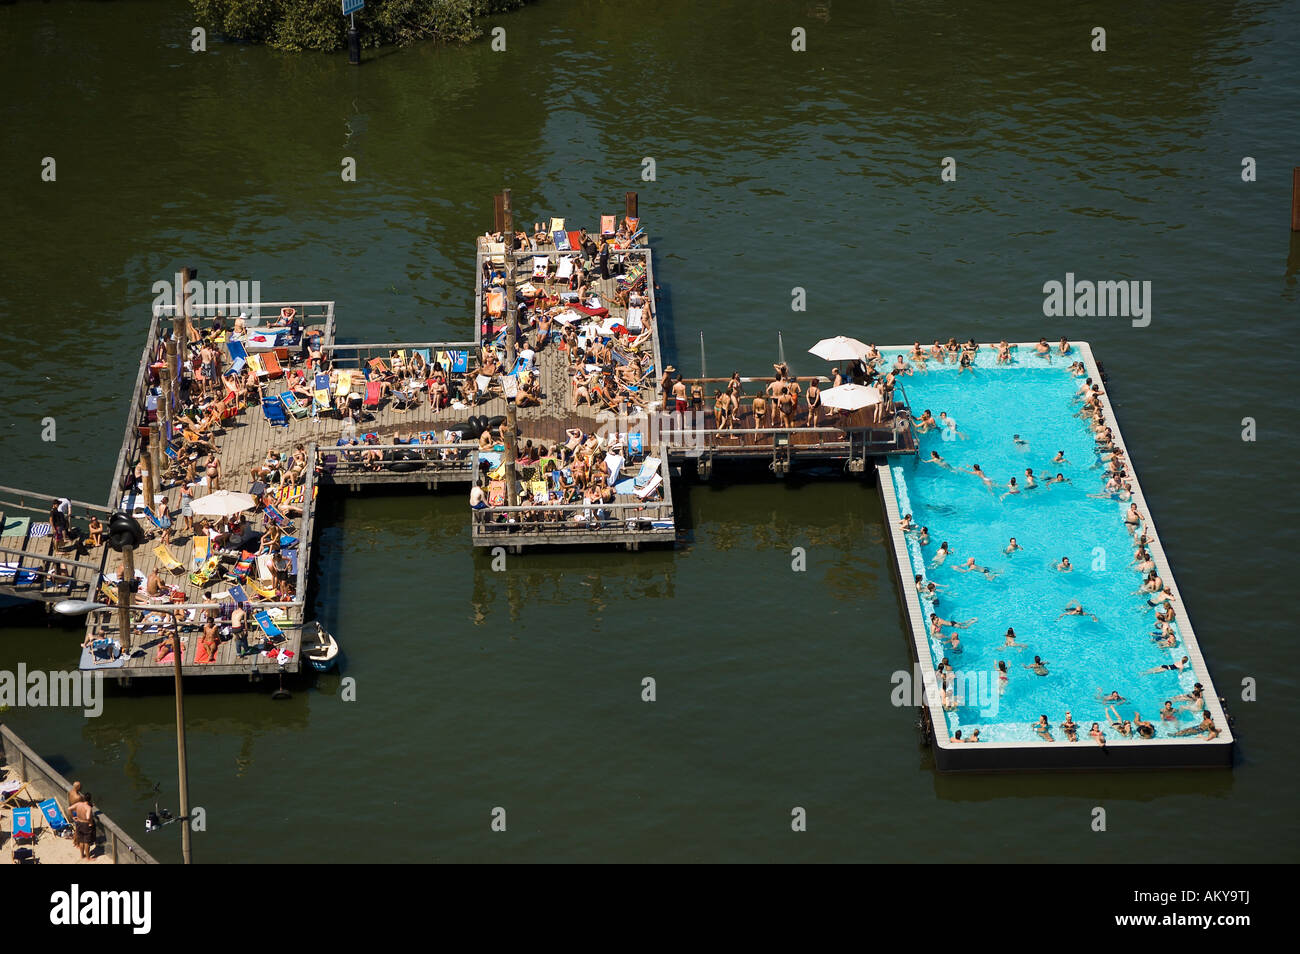 badeschiff bathing ship public swimming pool river spree stock photo royalty free image. Black Bedroom Furniture Sets. Home Design Ideas